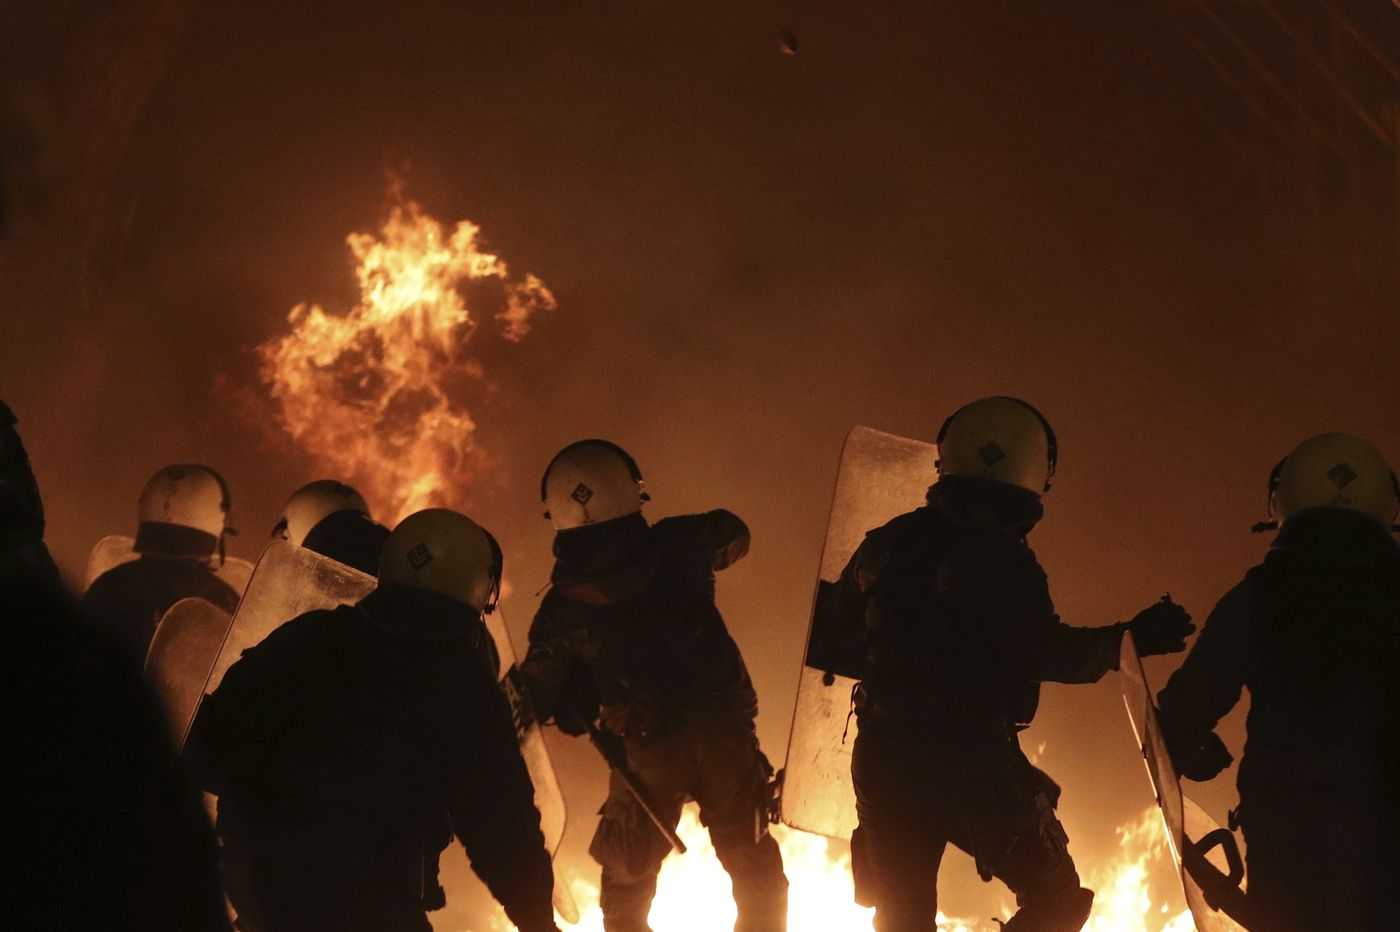 Riots sweep Athens on anniversary of teen's shooting death